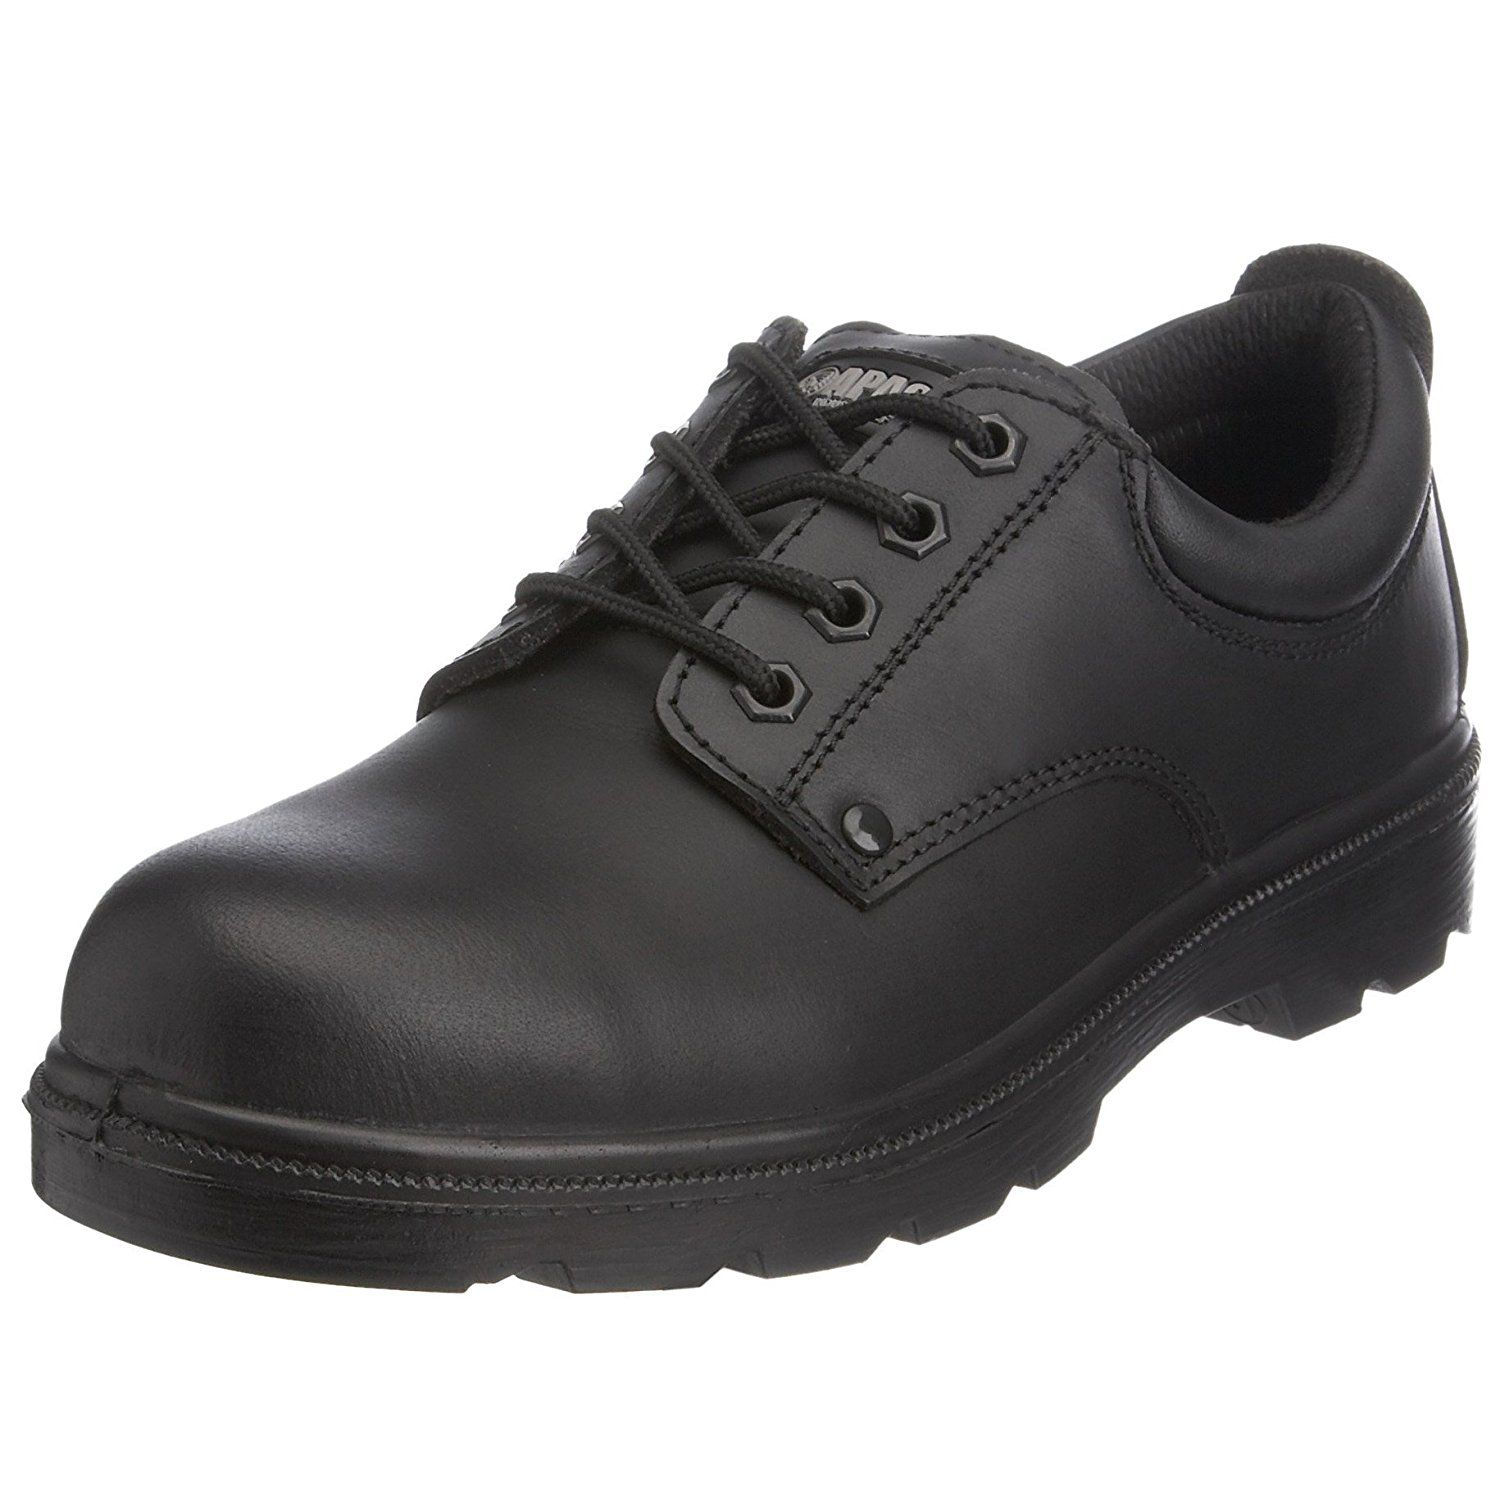 Apache Unisex-Adult AP306 Safety Shoes Black 9 UK Wide ** For more  information